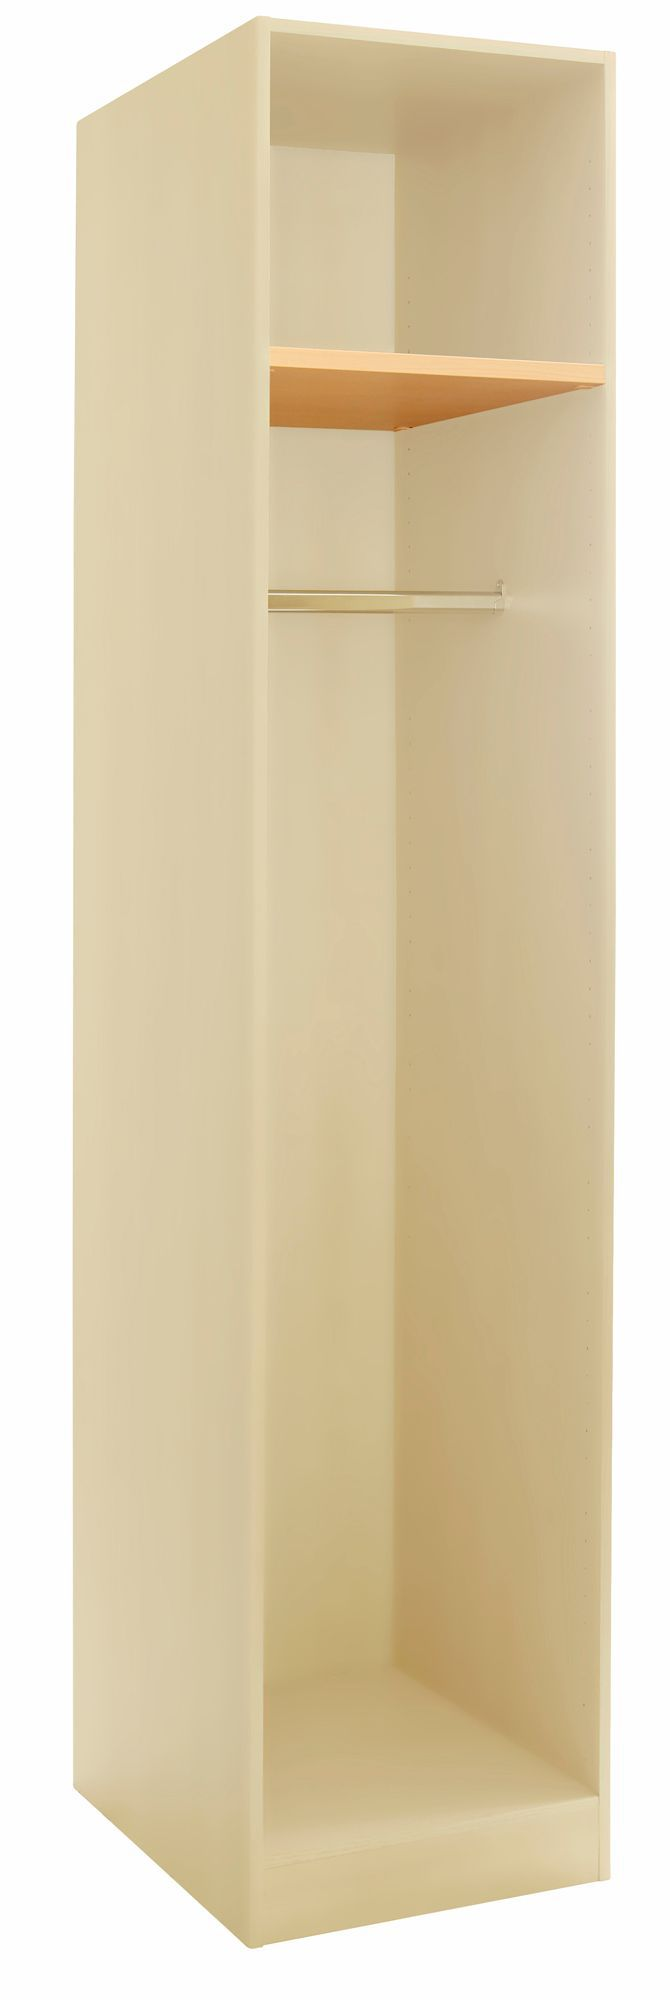 Cream single wardrobe carcass h 2112mm w 450mm d 590mm for Cream kitchen carcasses